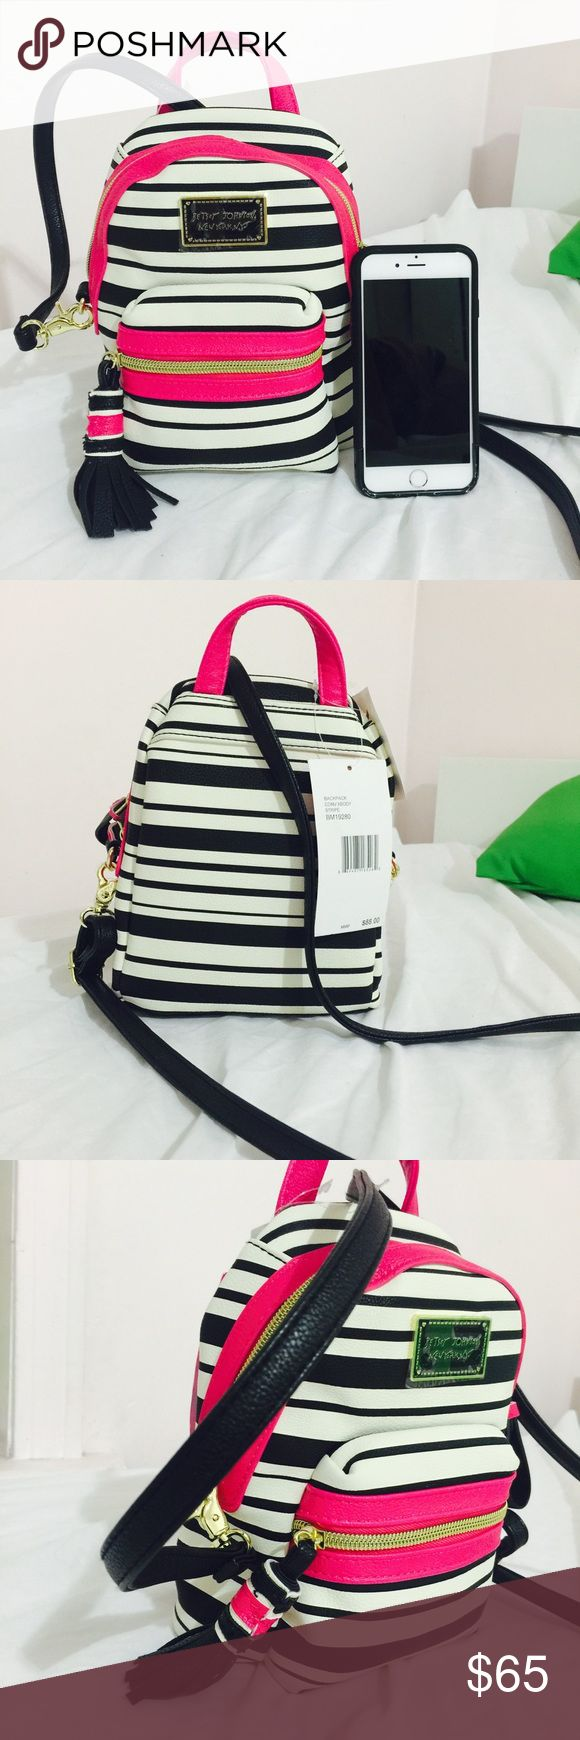 Betsey Johnson mini backpack 😍😊 Brand new, super cute, no trade 🚫, you can store many things inside. Betsey Johnson Bags Backpacks